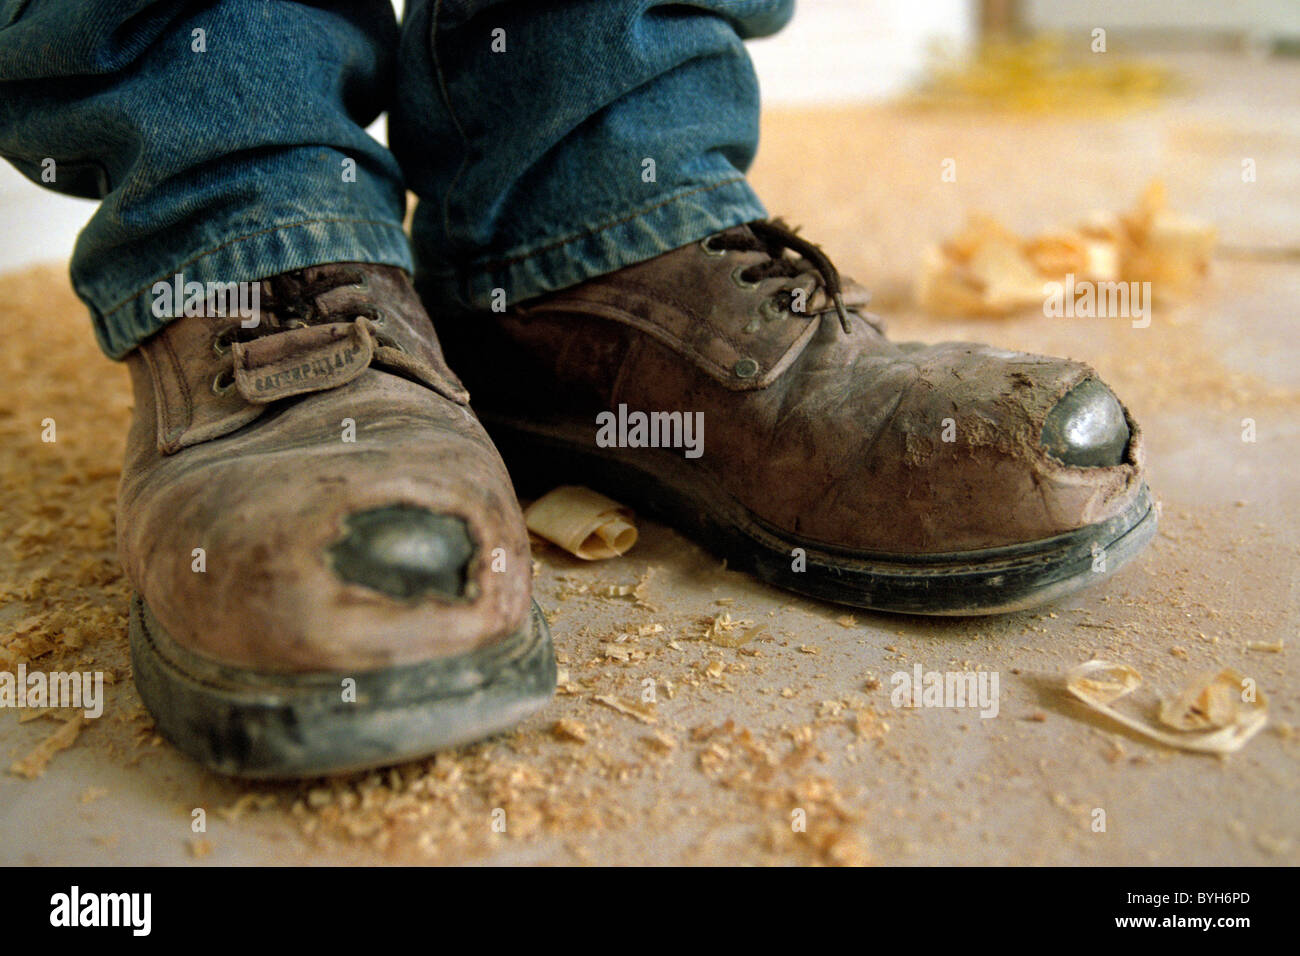 Detail Of Worn Out Safety Shoes Stock Photo 34184597 Alamy